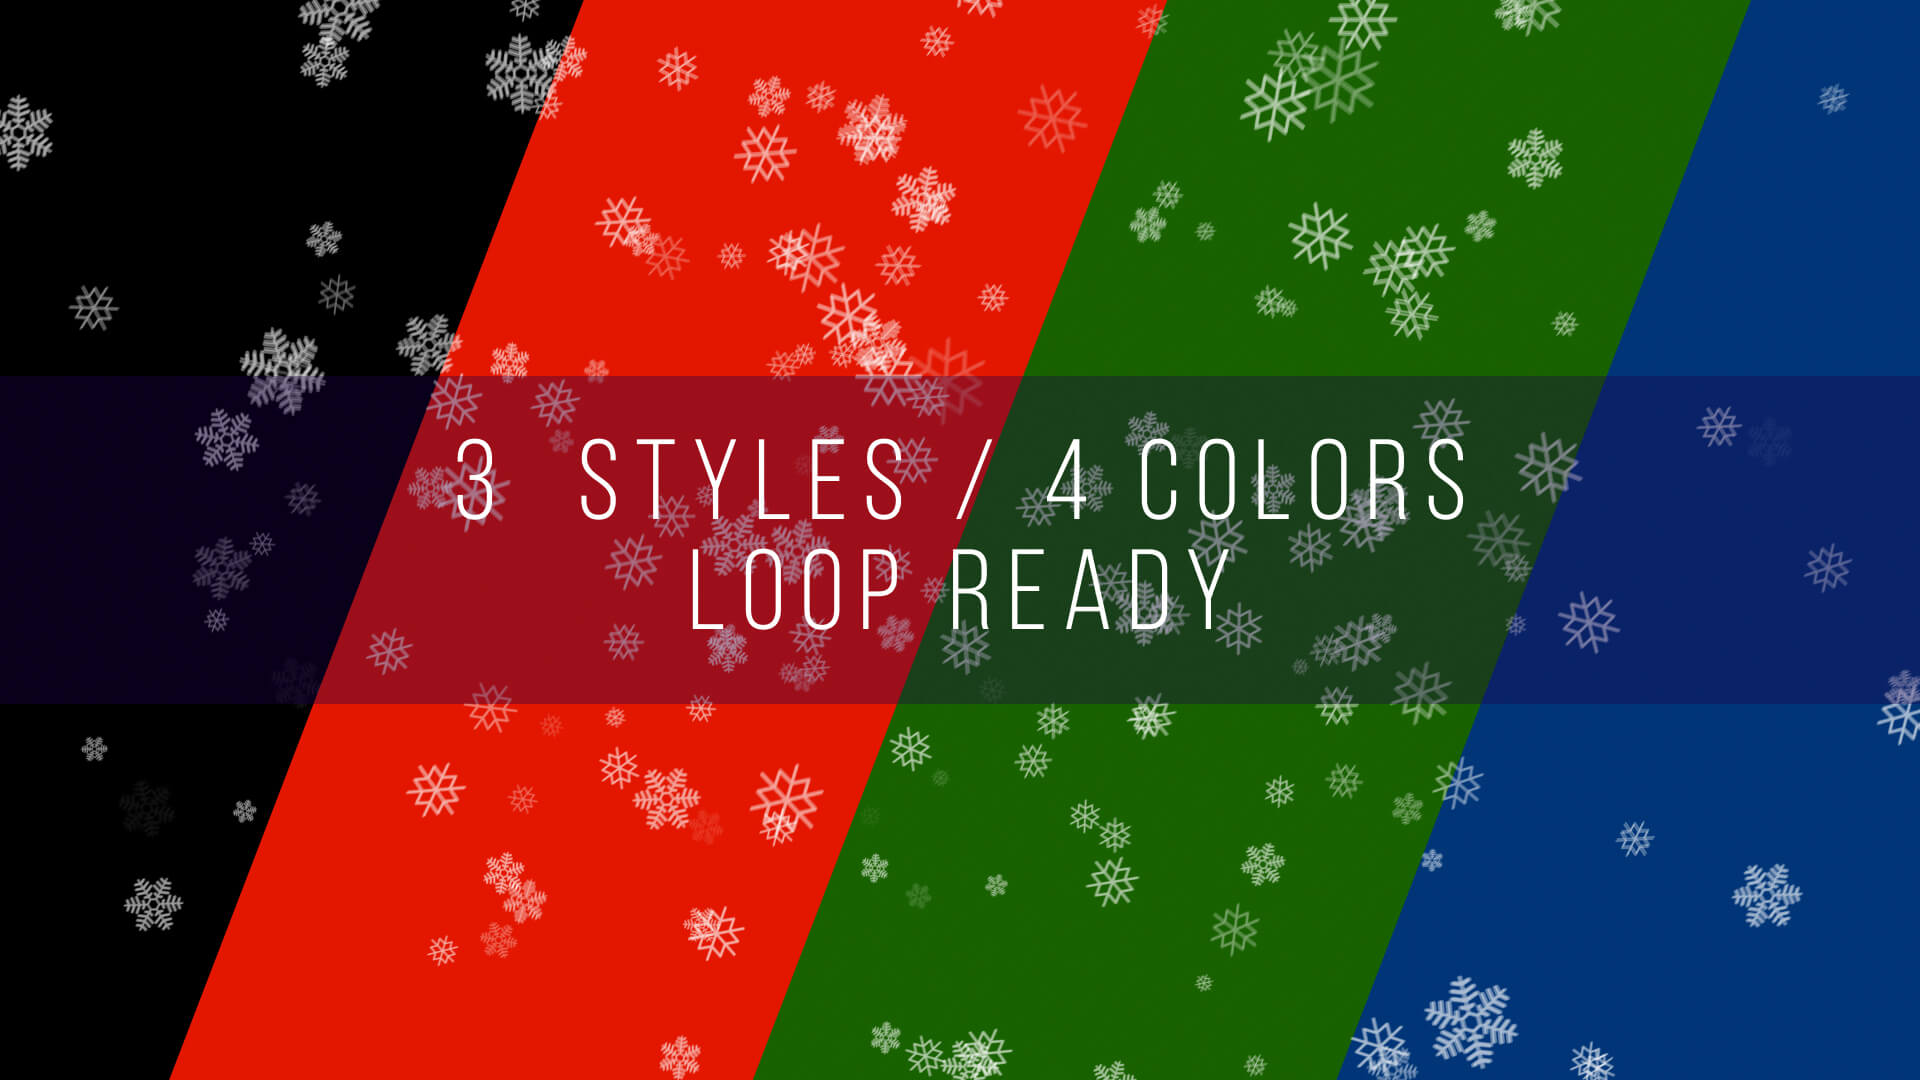 Falling Snowflakes Background Animations Loop Ready